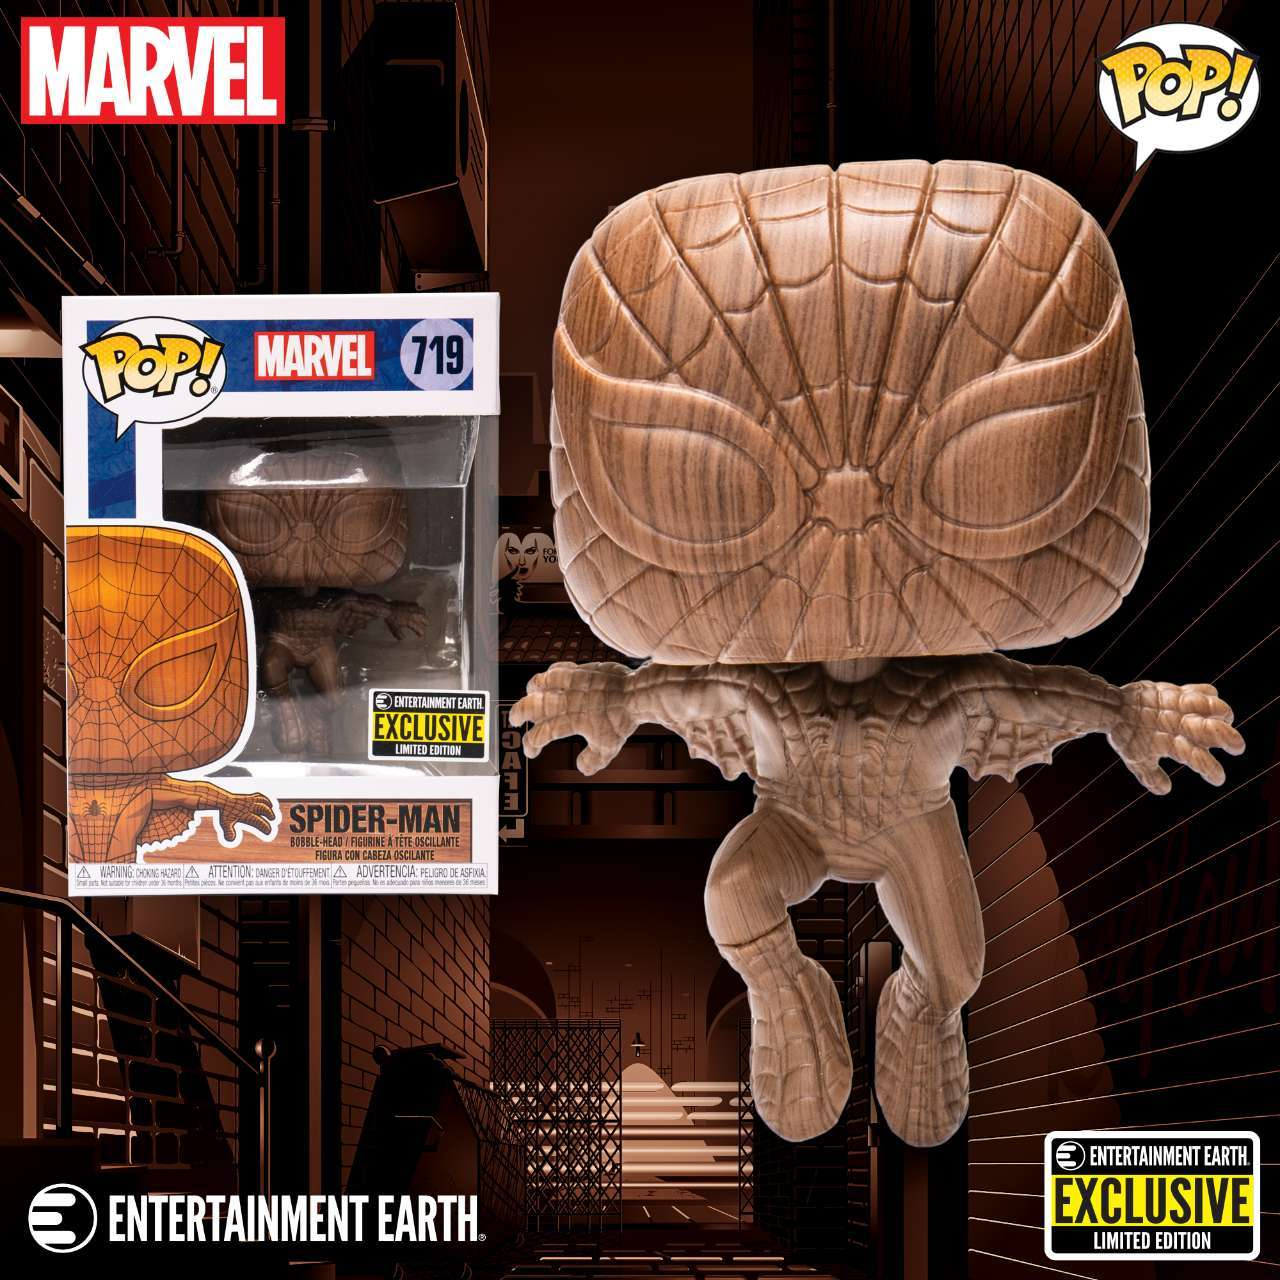 Funko Adds Spider-Man to the Exclusive Marvel Wood Deco Pop Figure Line